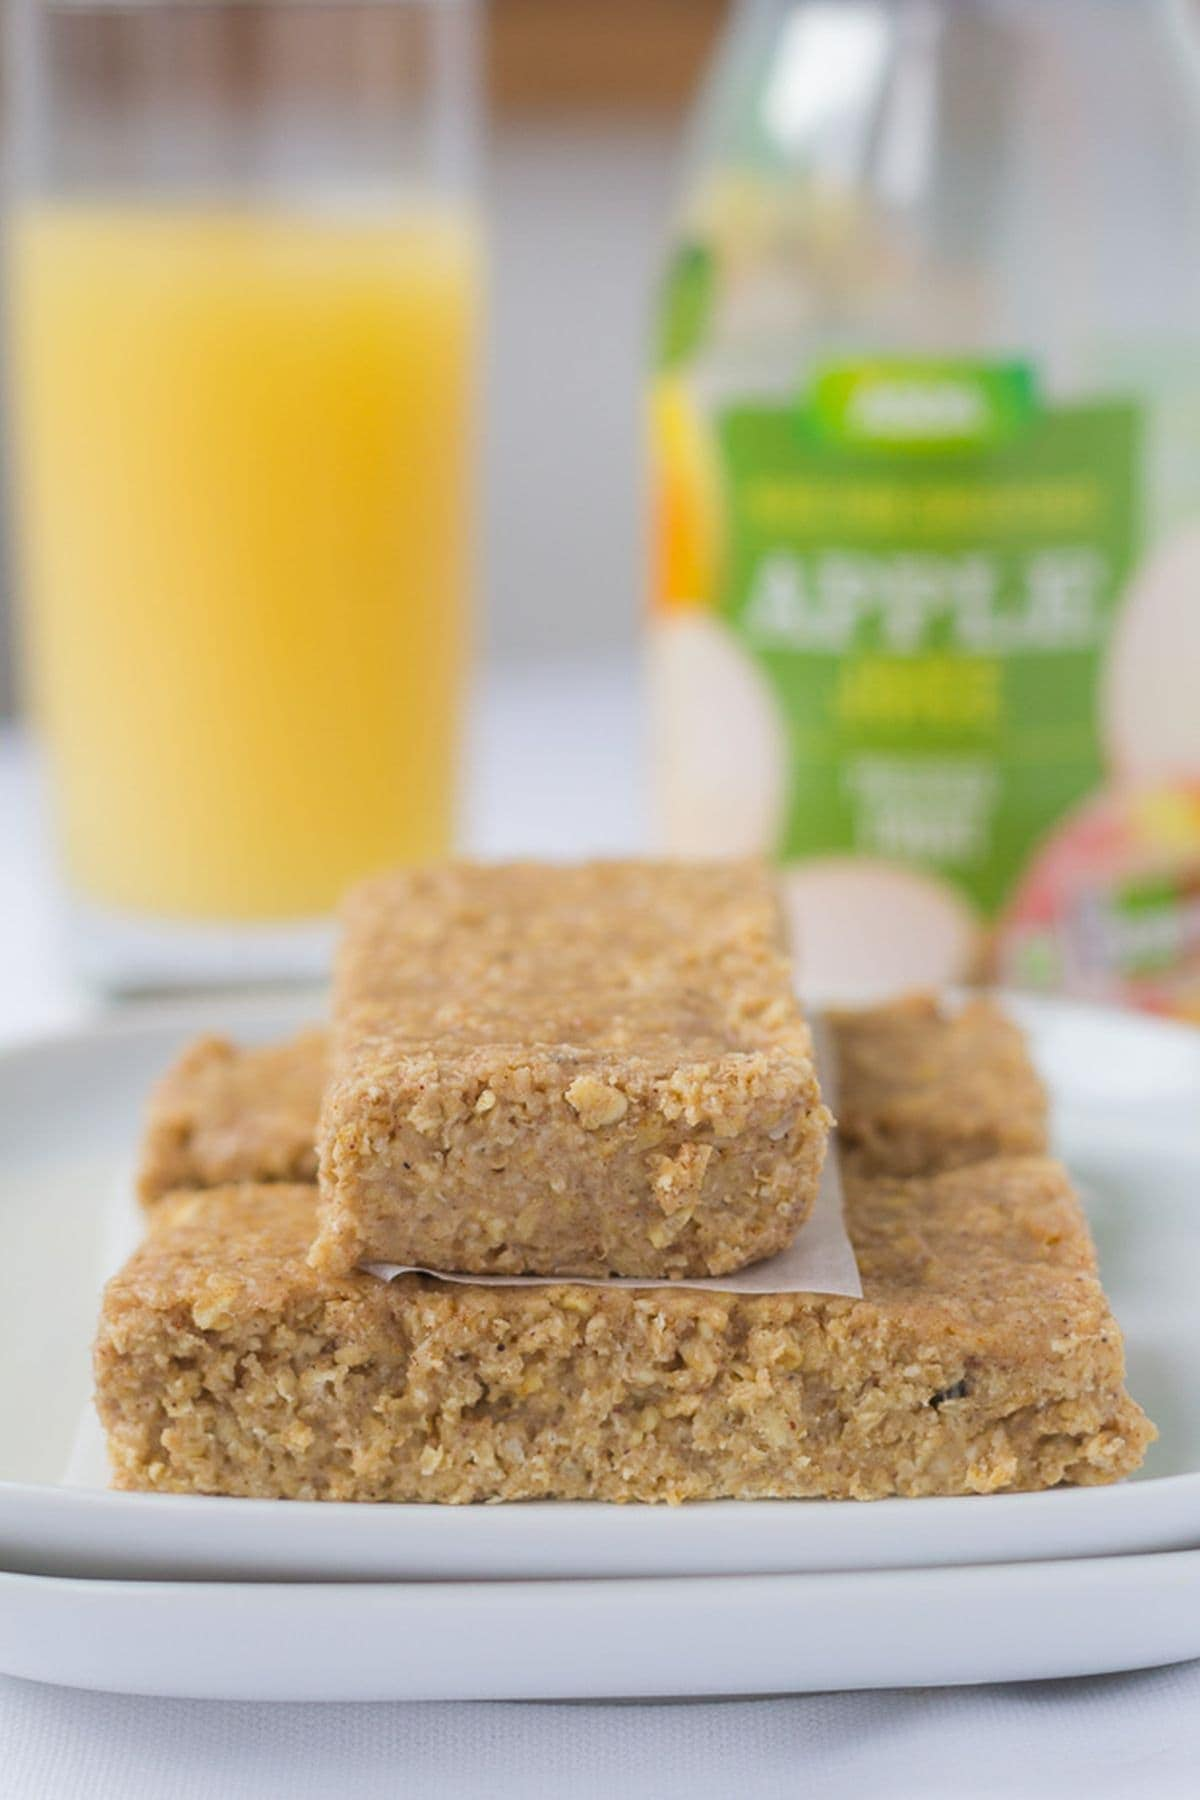 A plate of three no bake apple and cinnamon oat bars with a glass of apple juice and a plastic bottle juice bottle in the background.